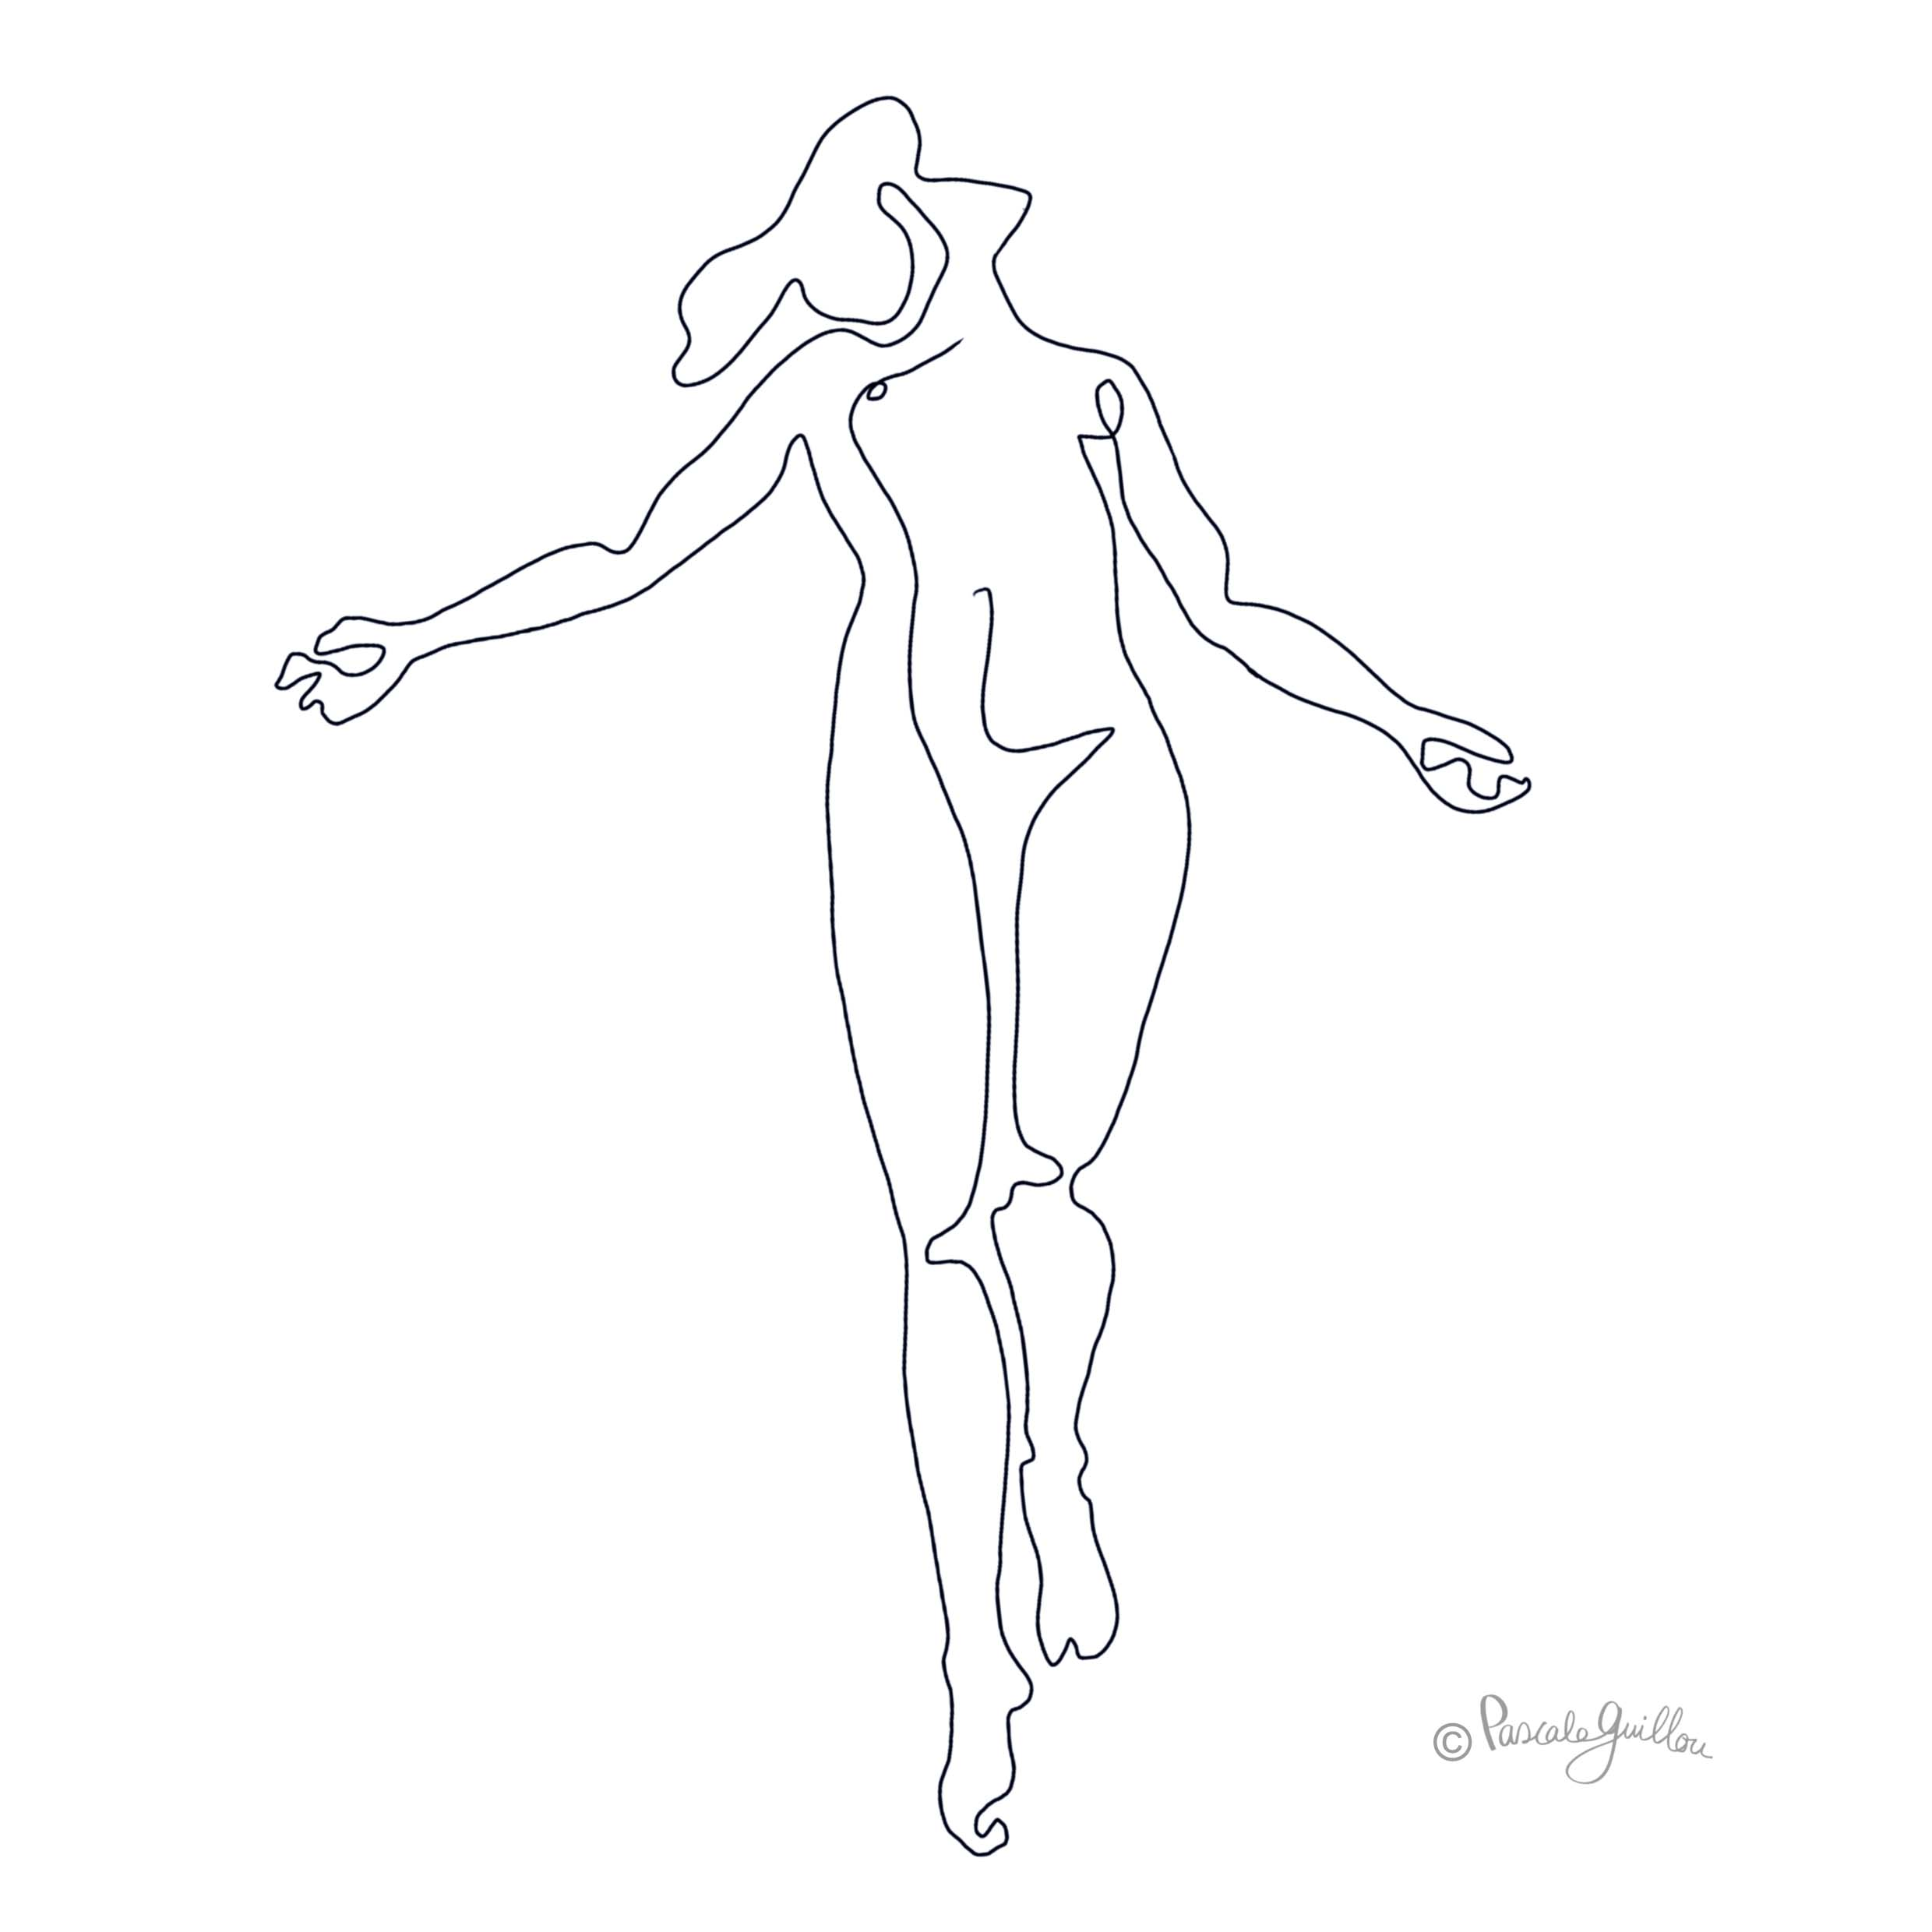 Woman body naked One line Illustration ©Pascale Guillou